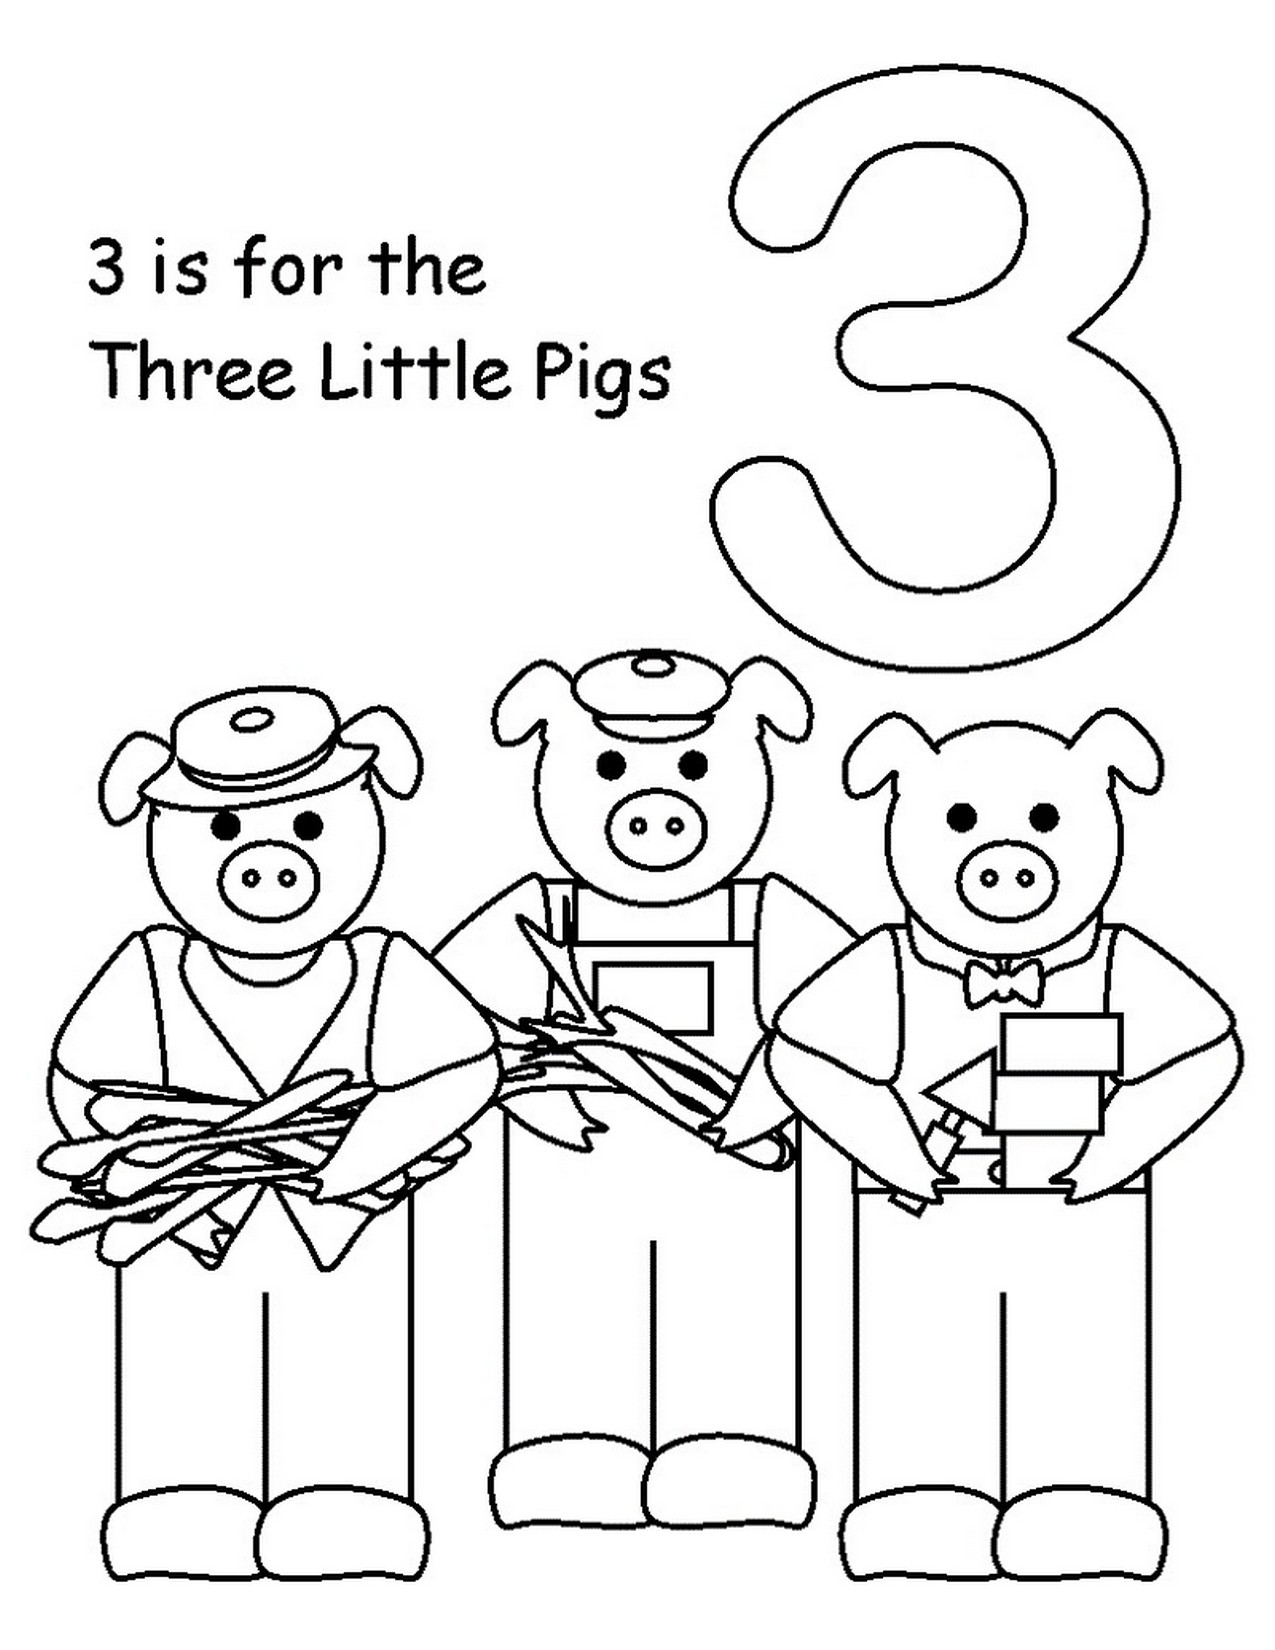 Three little pigs coloring pages for preschool learning for Coloring page for preschool